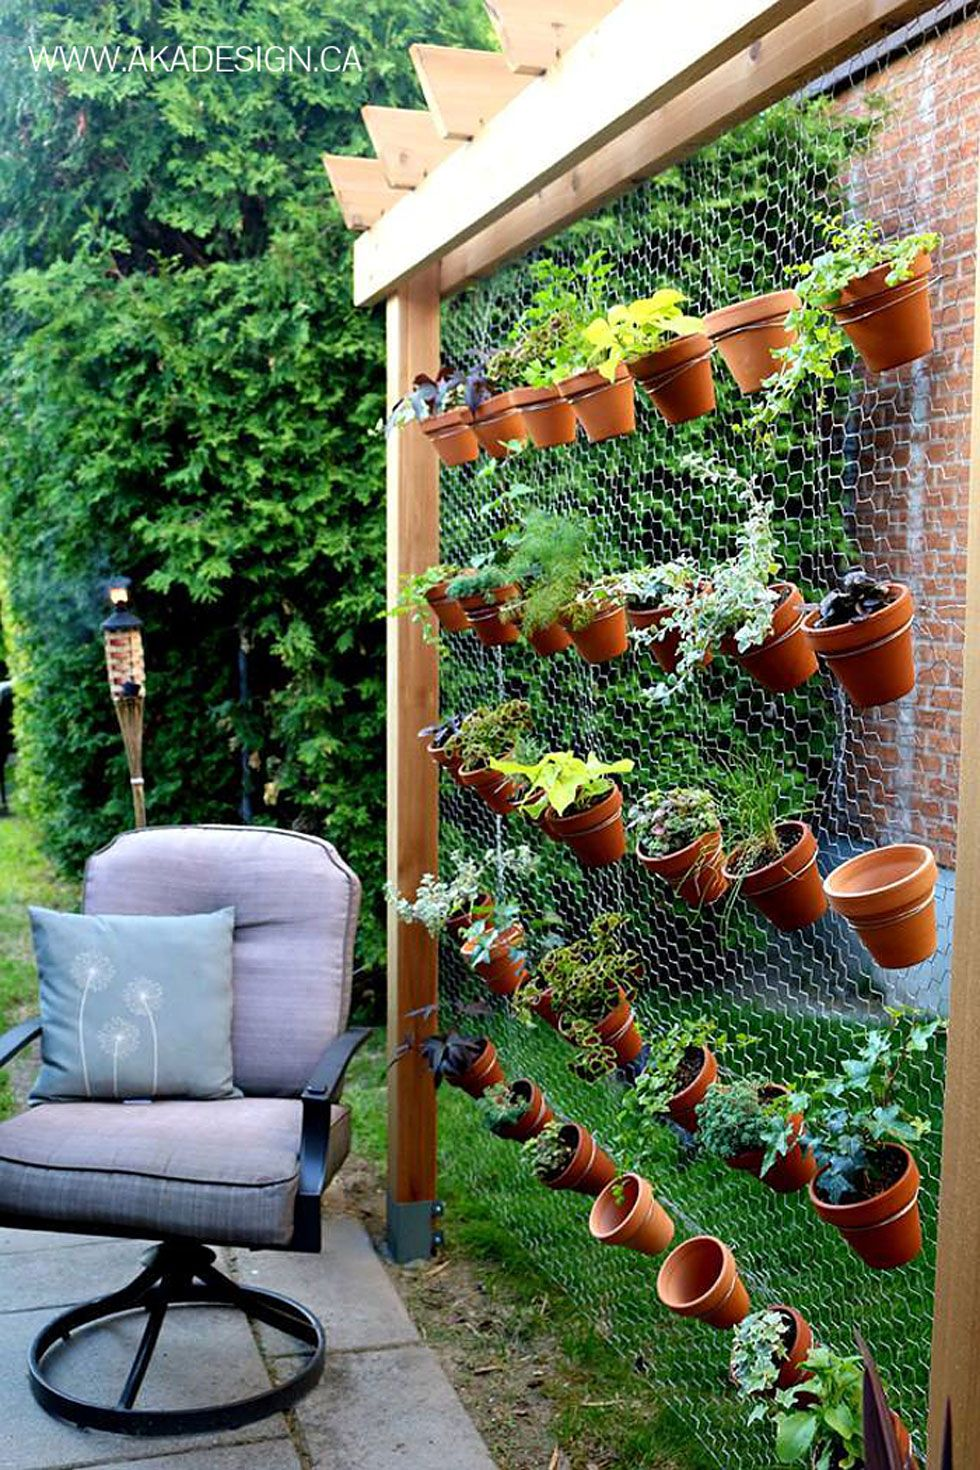 26 creative ways to plant a vertical garden how to make a vertical 26 creative ways to plant a vertical garden how to make a vertical garden workwithnaturefo